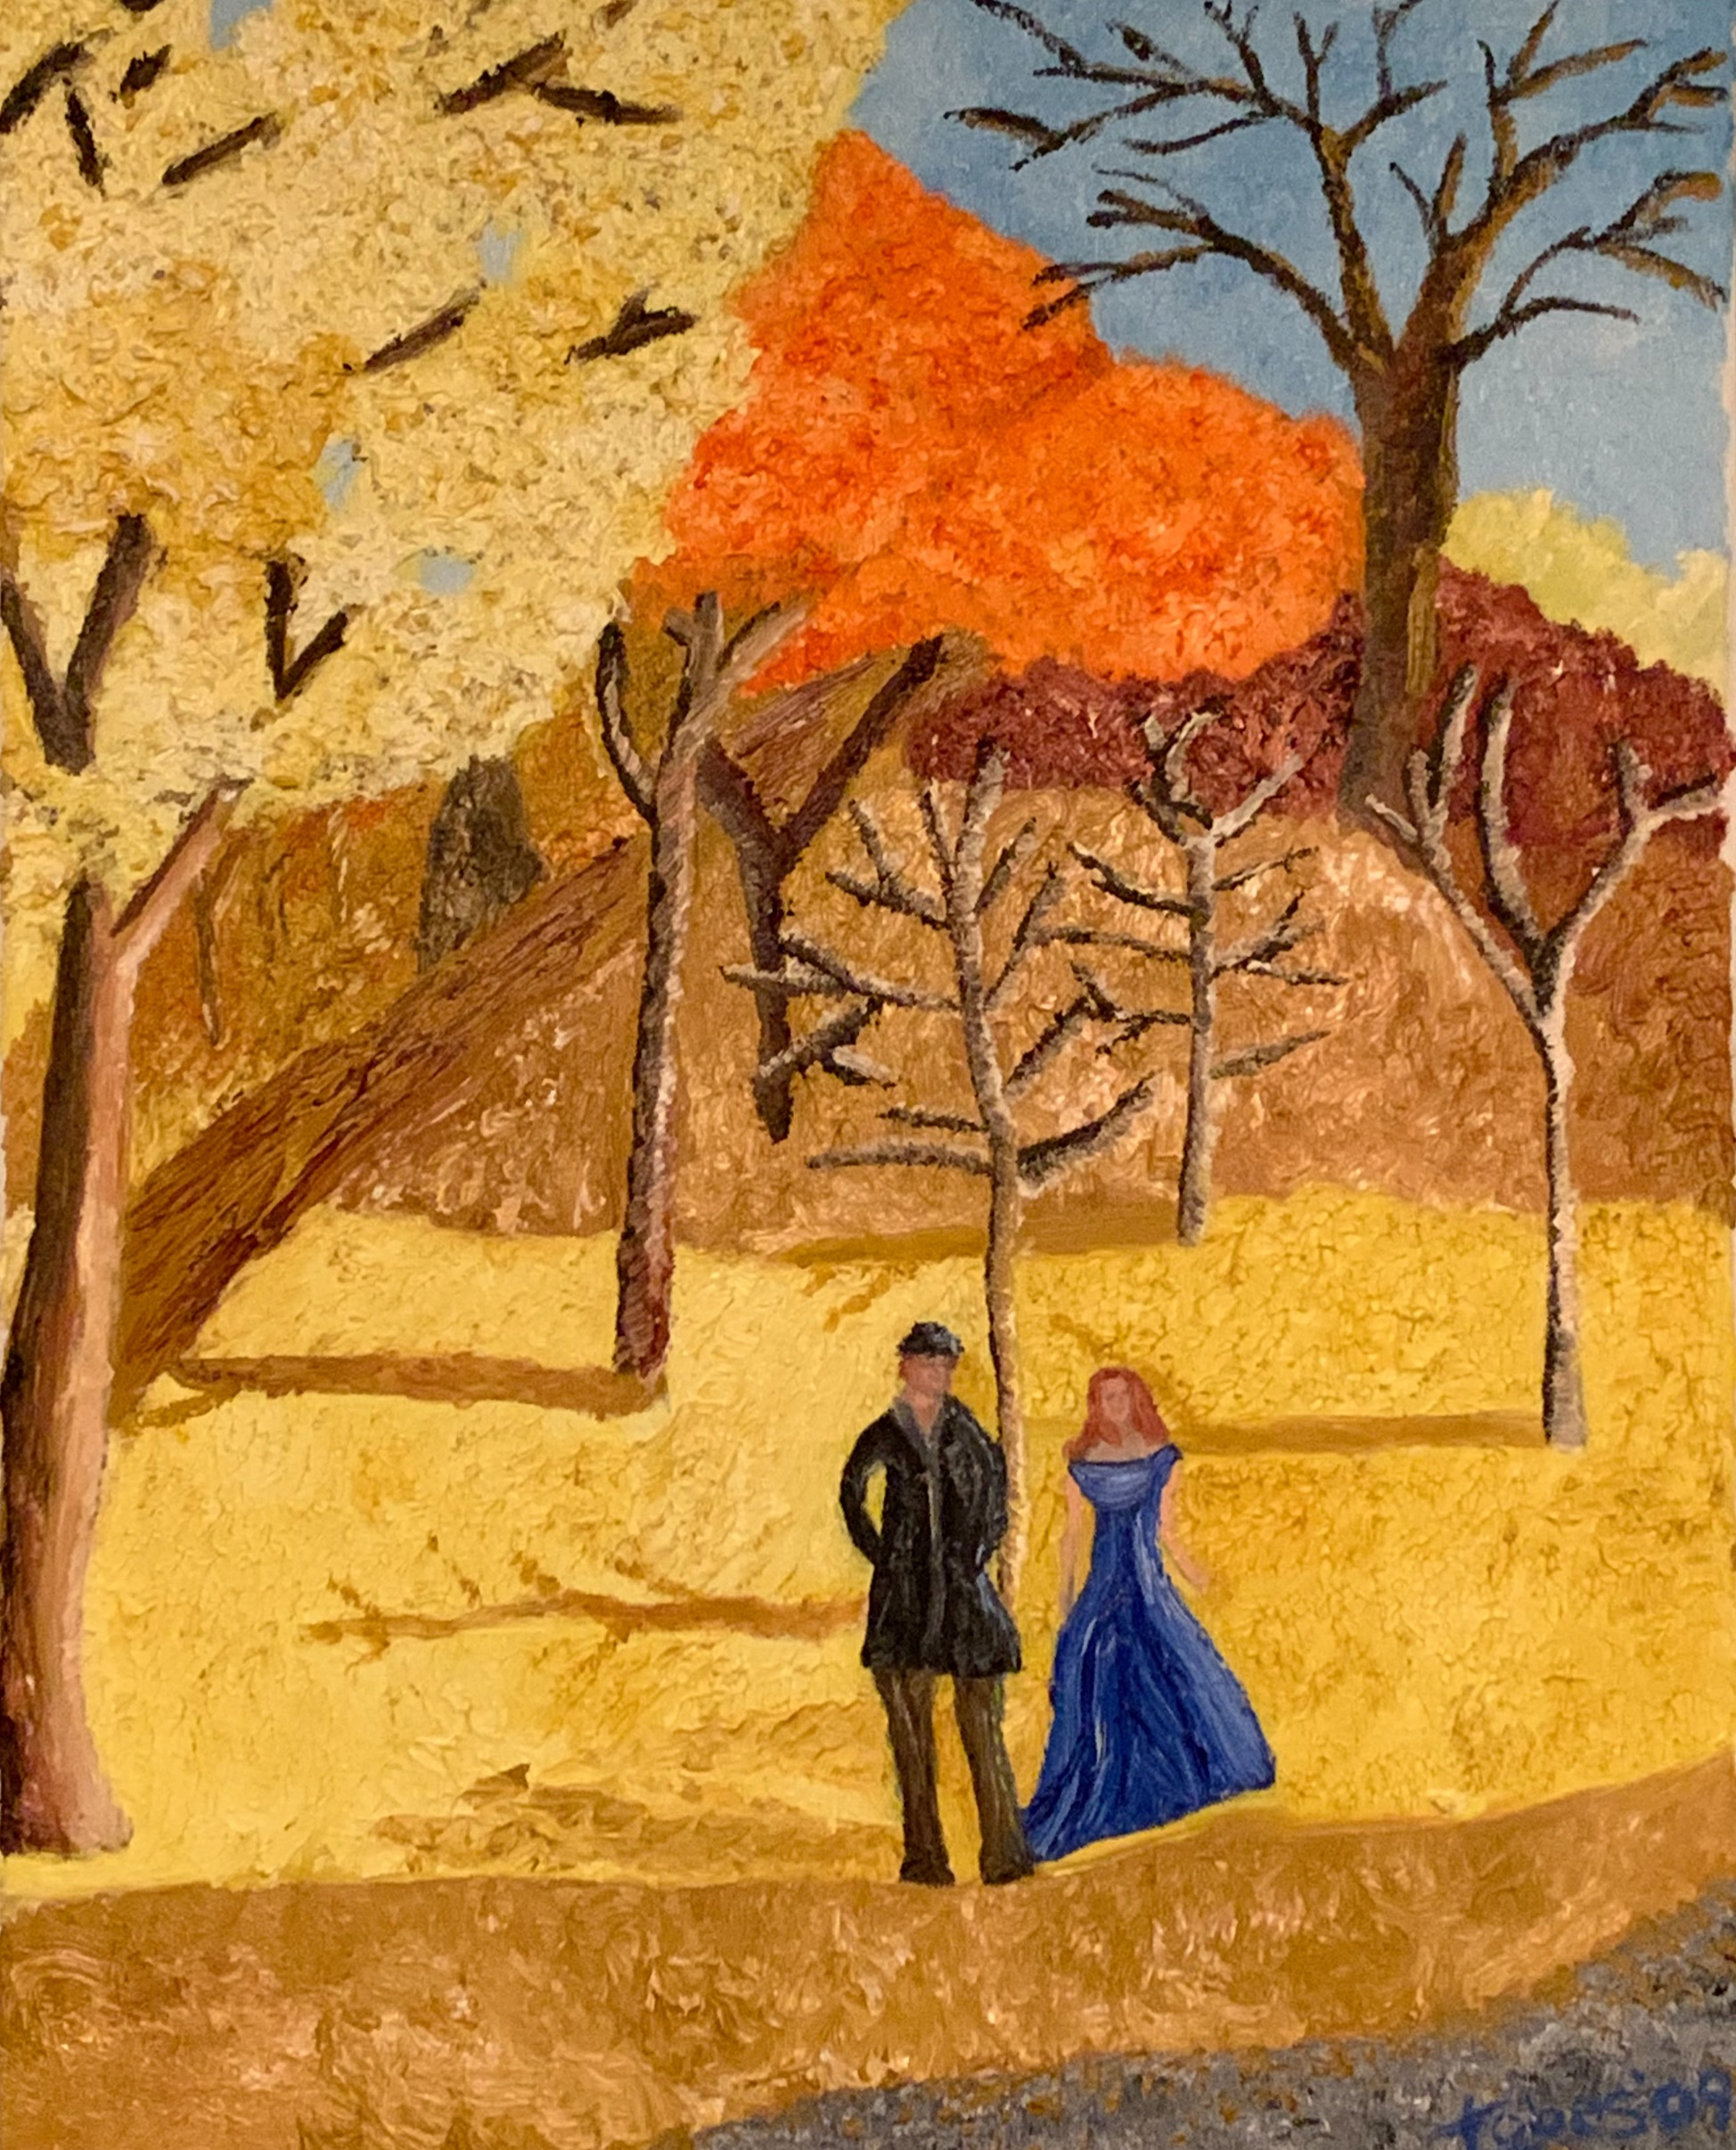 woman in a blue dress, in a yellow field during the fall, with companion